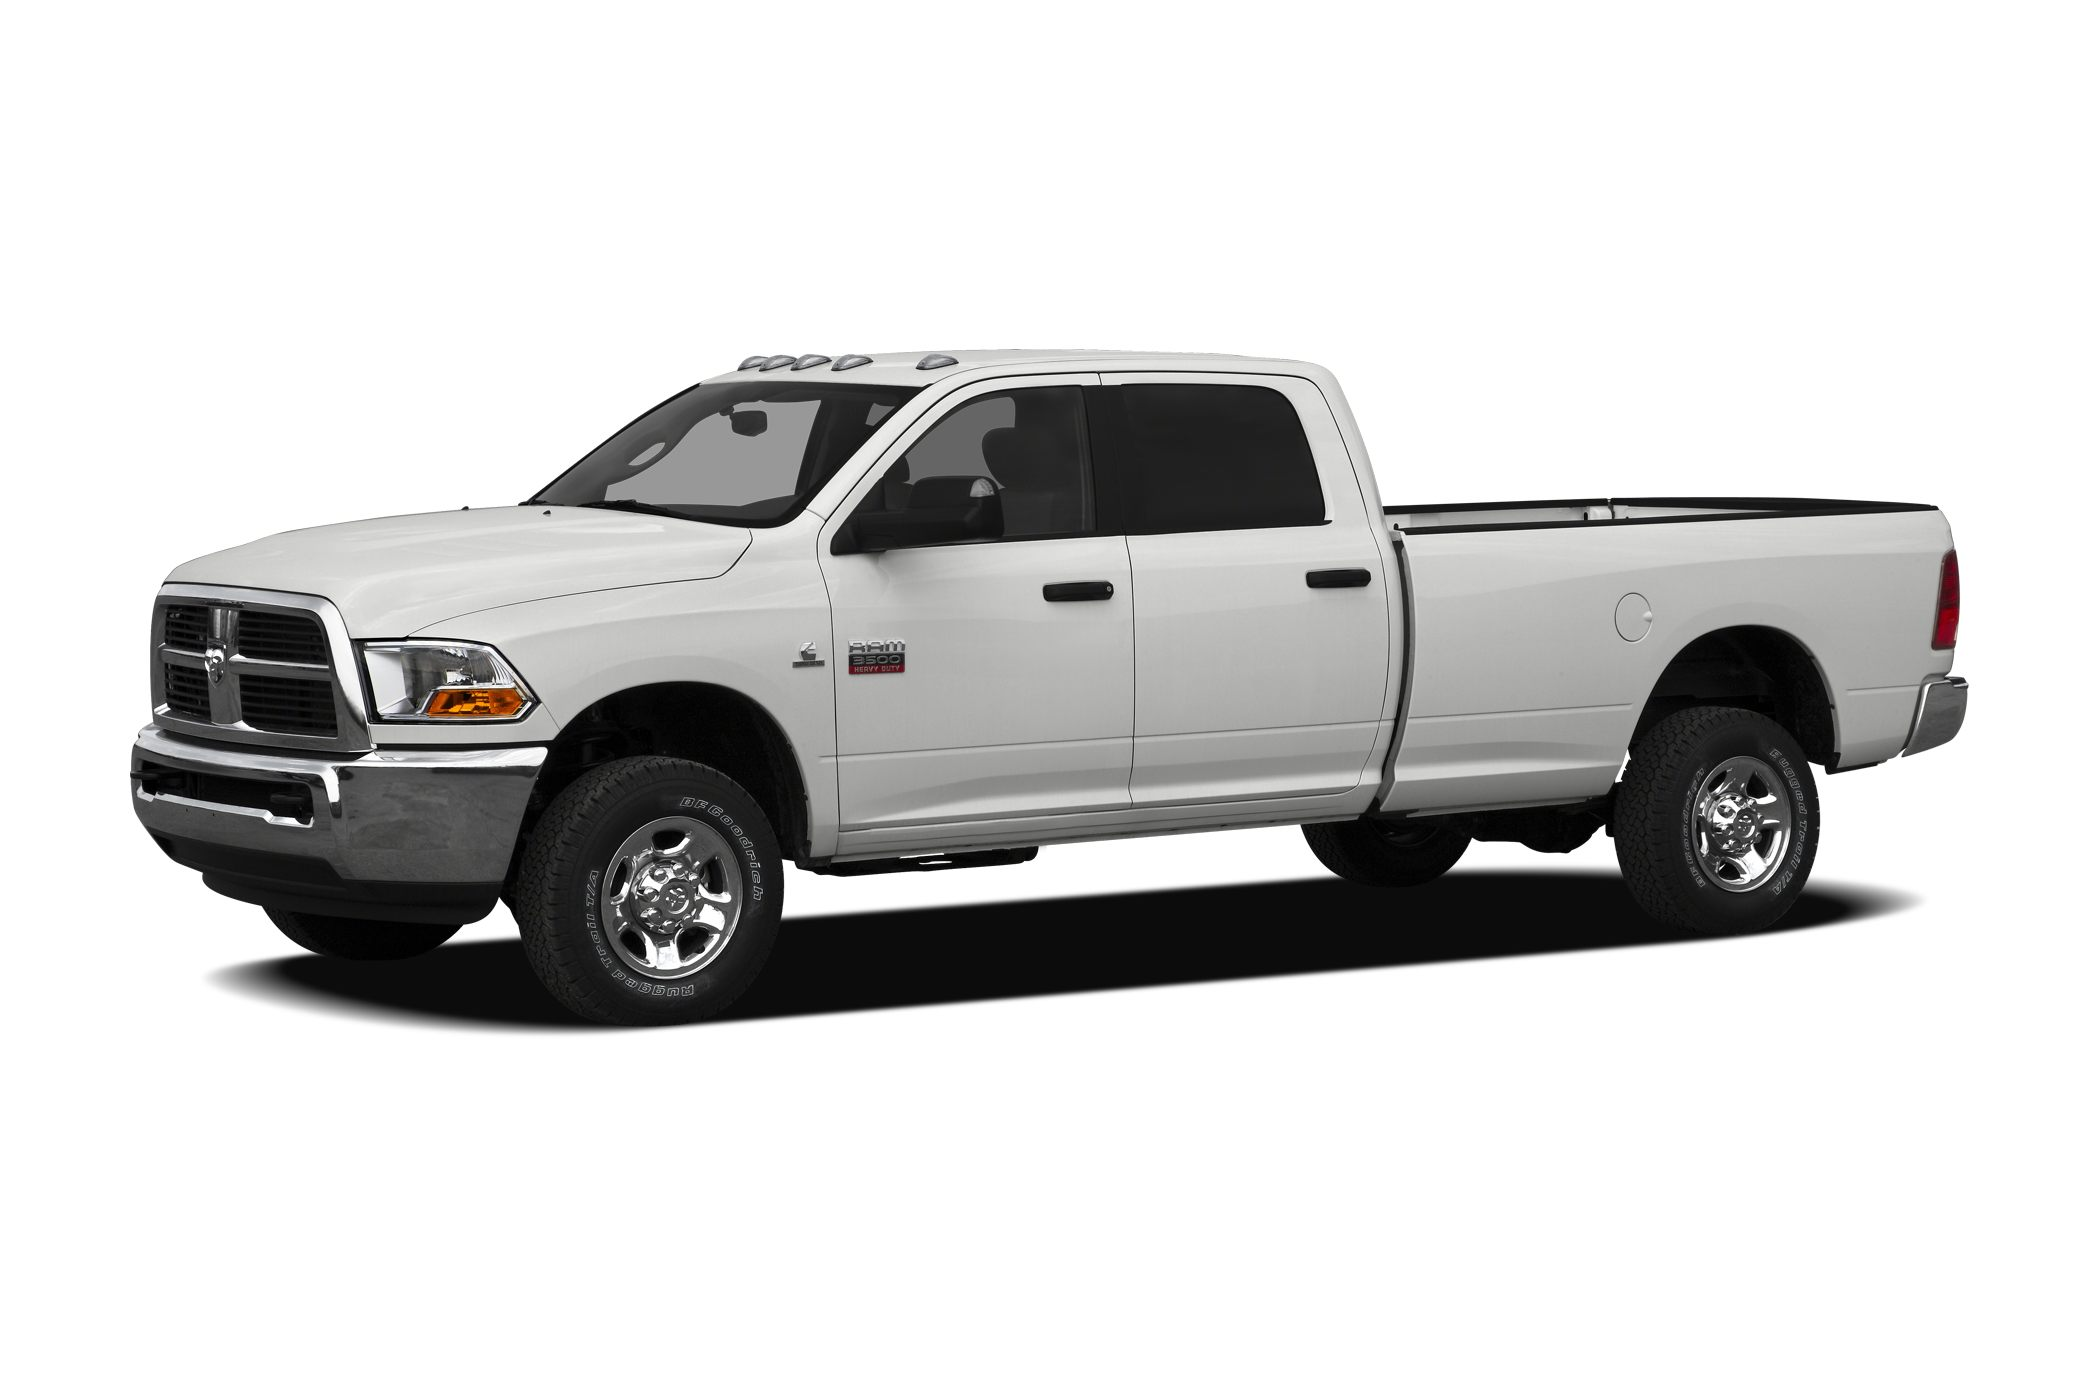 2012 RAM 3500 Laramie Crew Cab Pickup for sale in Lebanon for $46,800 with 49,288 miles